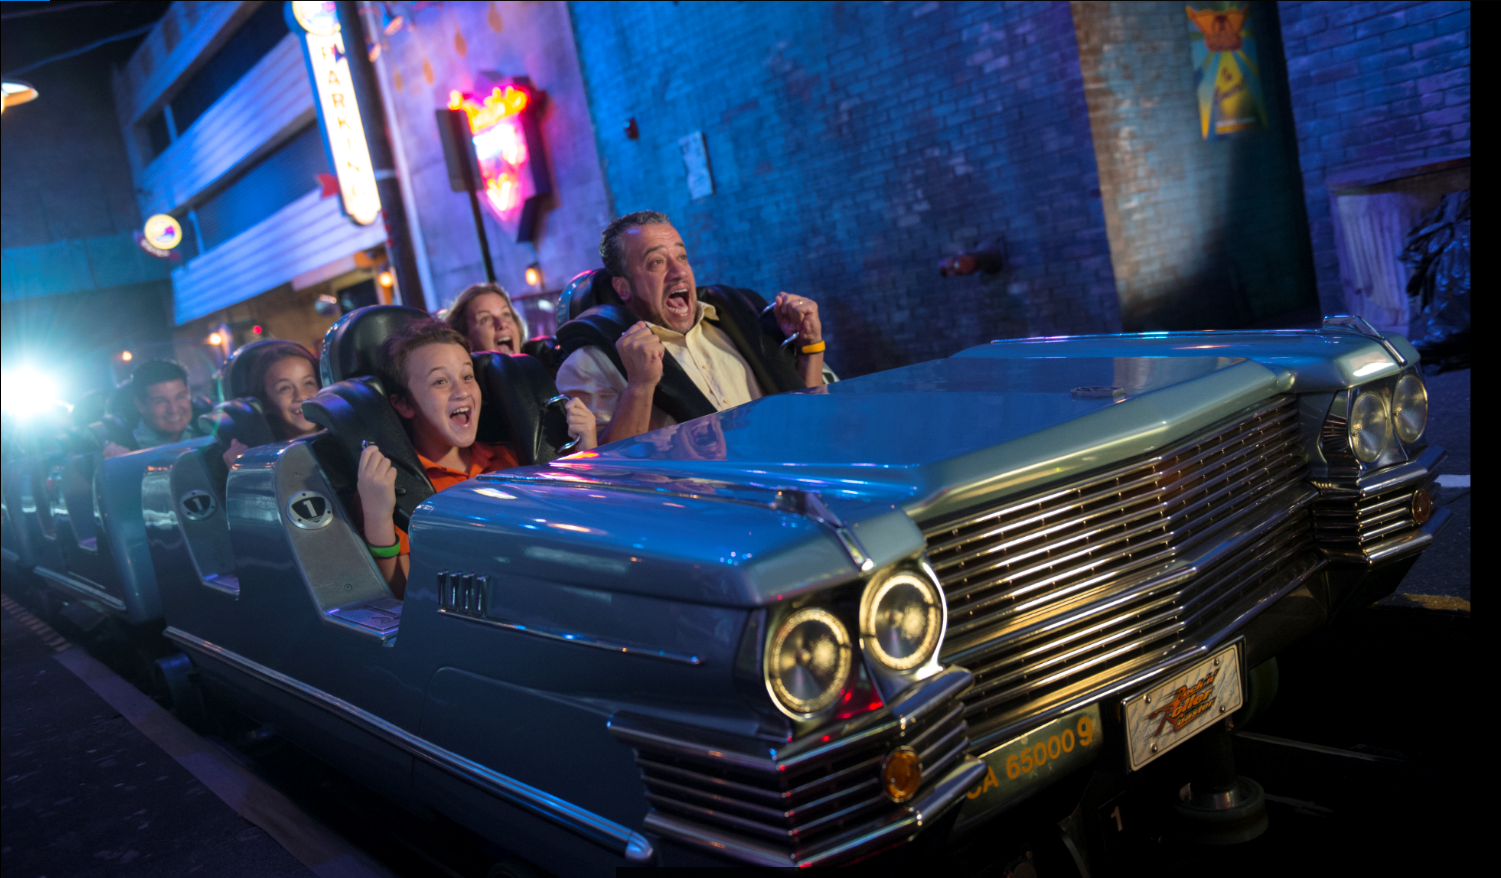 Father and son screaming on Rock 'n' Roller Coaster starring Aerosmith at Disney's Hollywood Studios